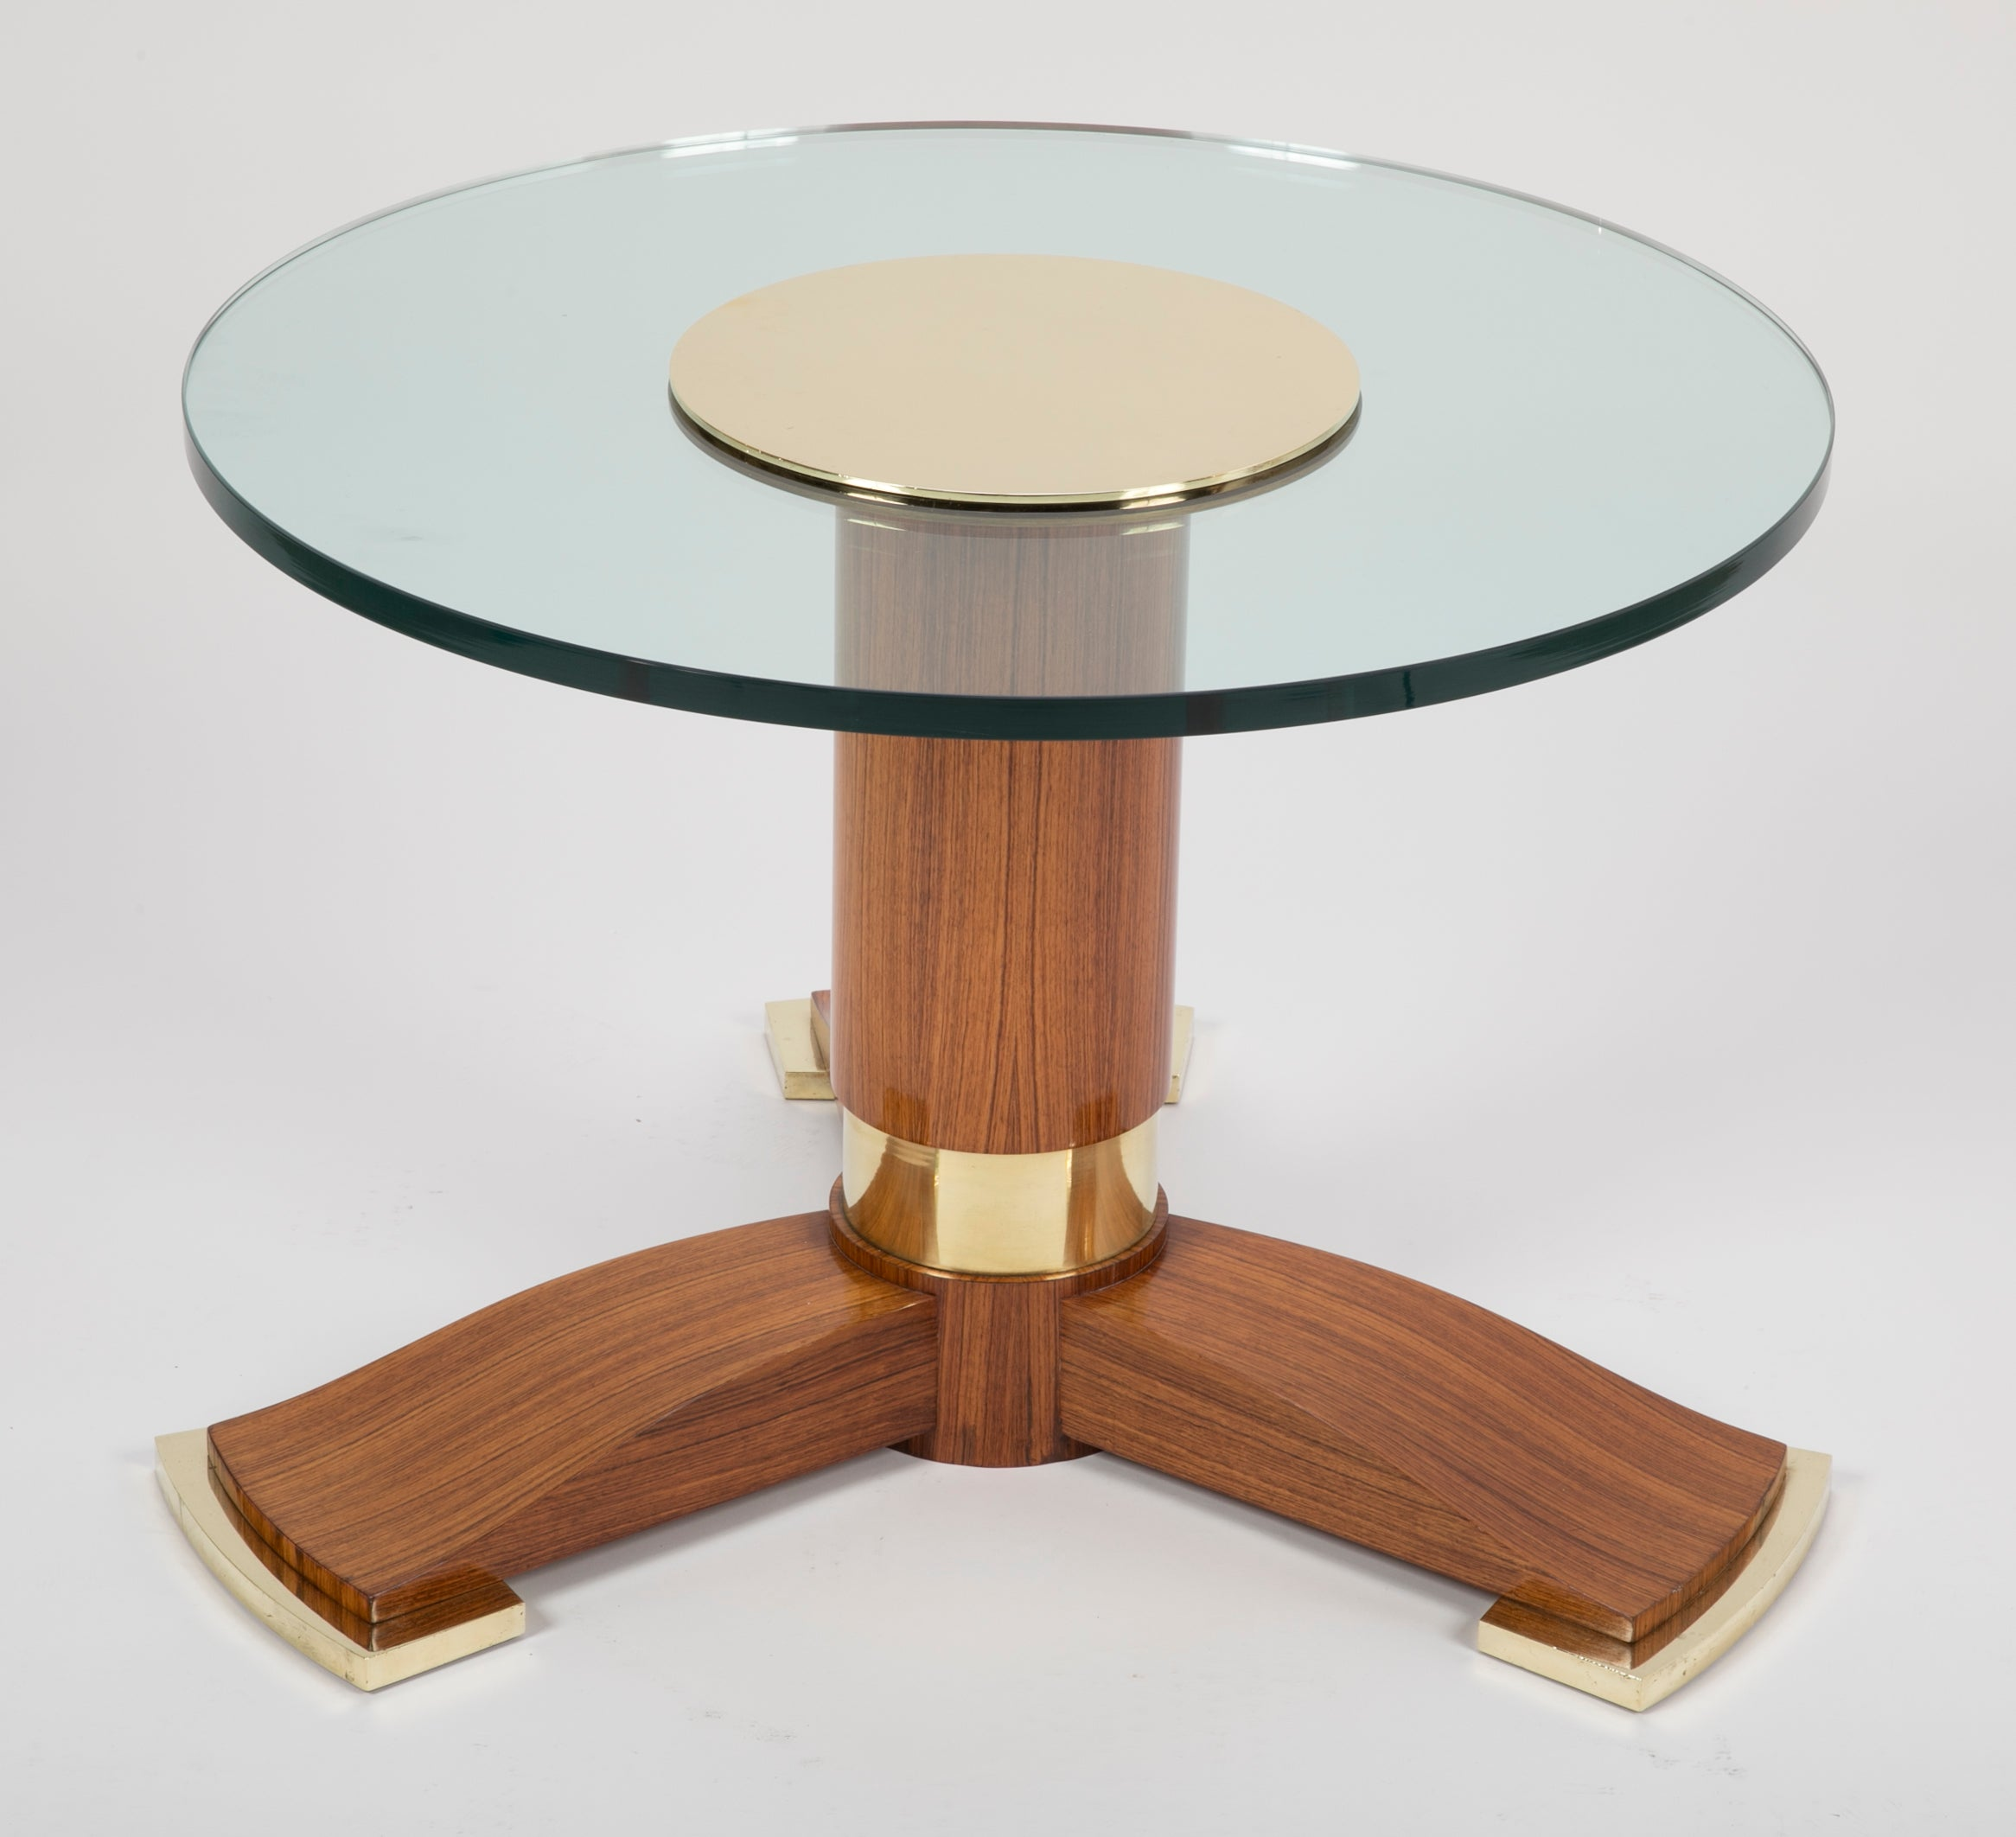 table oroa eichholtz products furniture urban glass luxury coffee modern